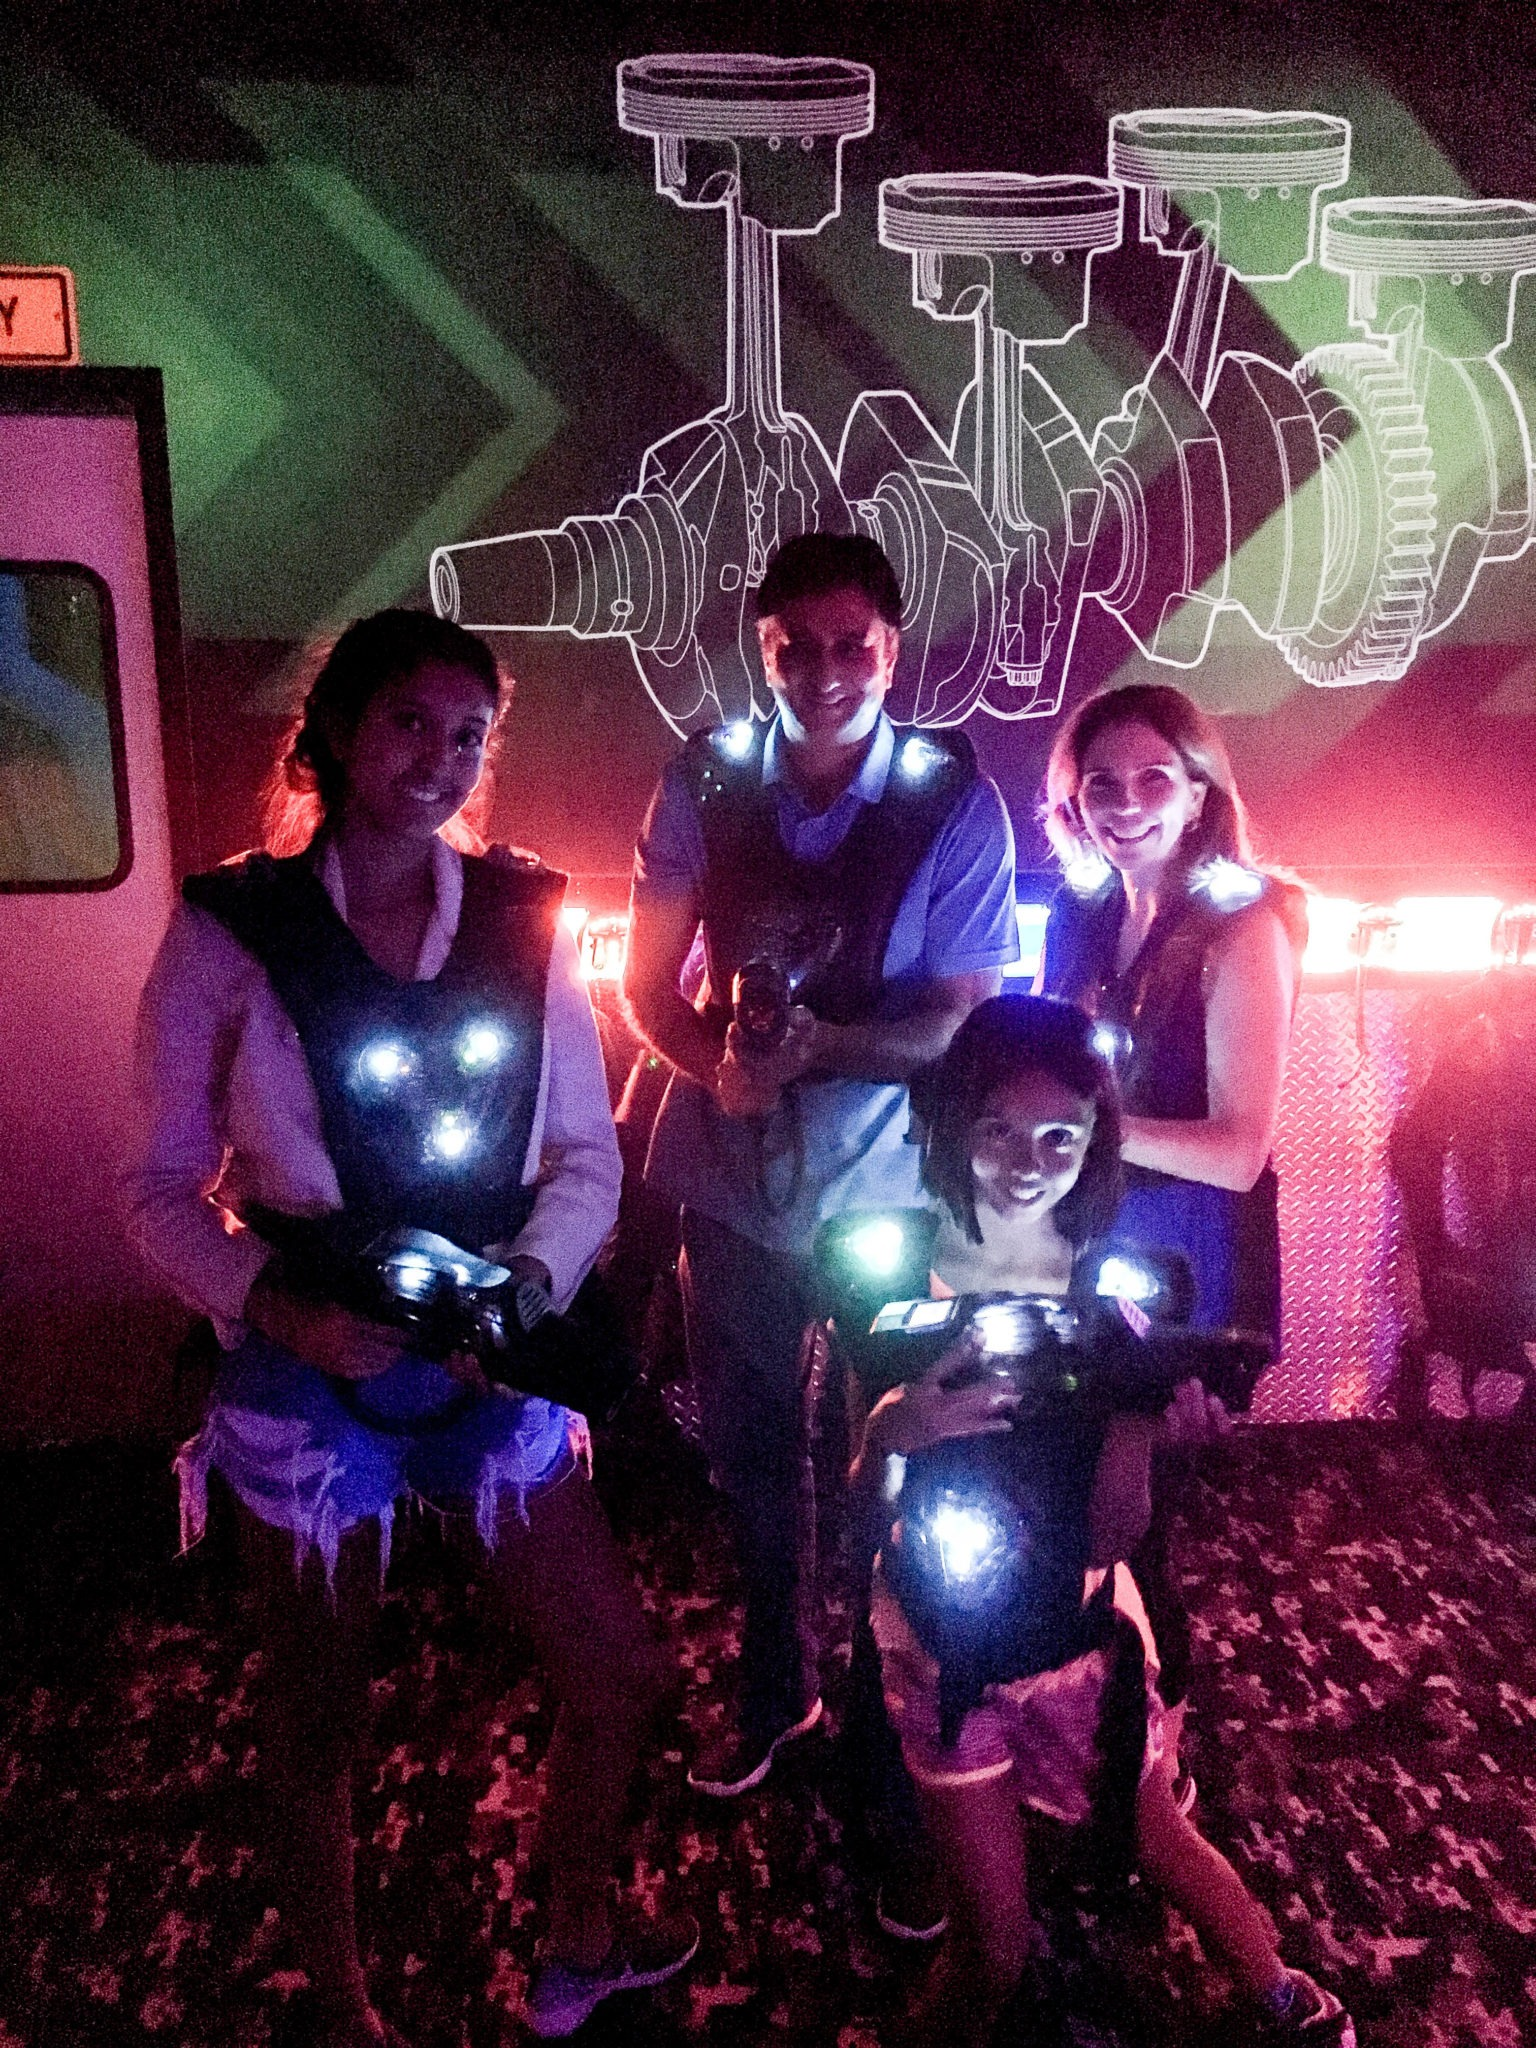 laser tag at Andretti Indoor Karting & Games in Orlando